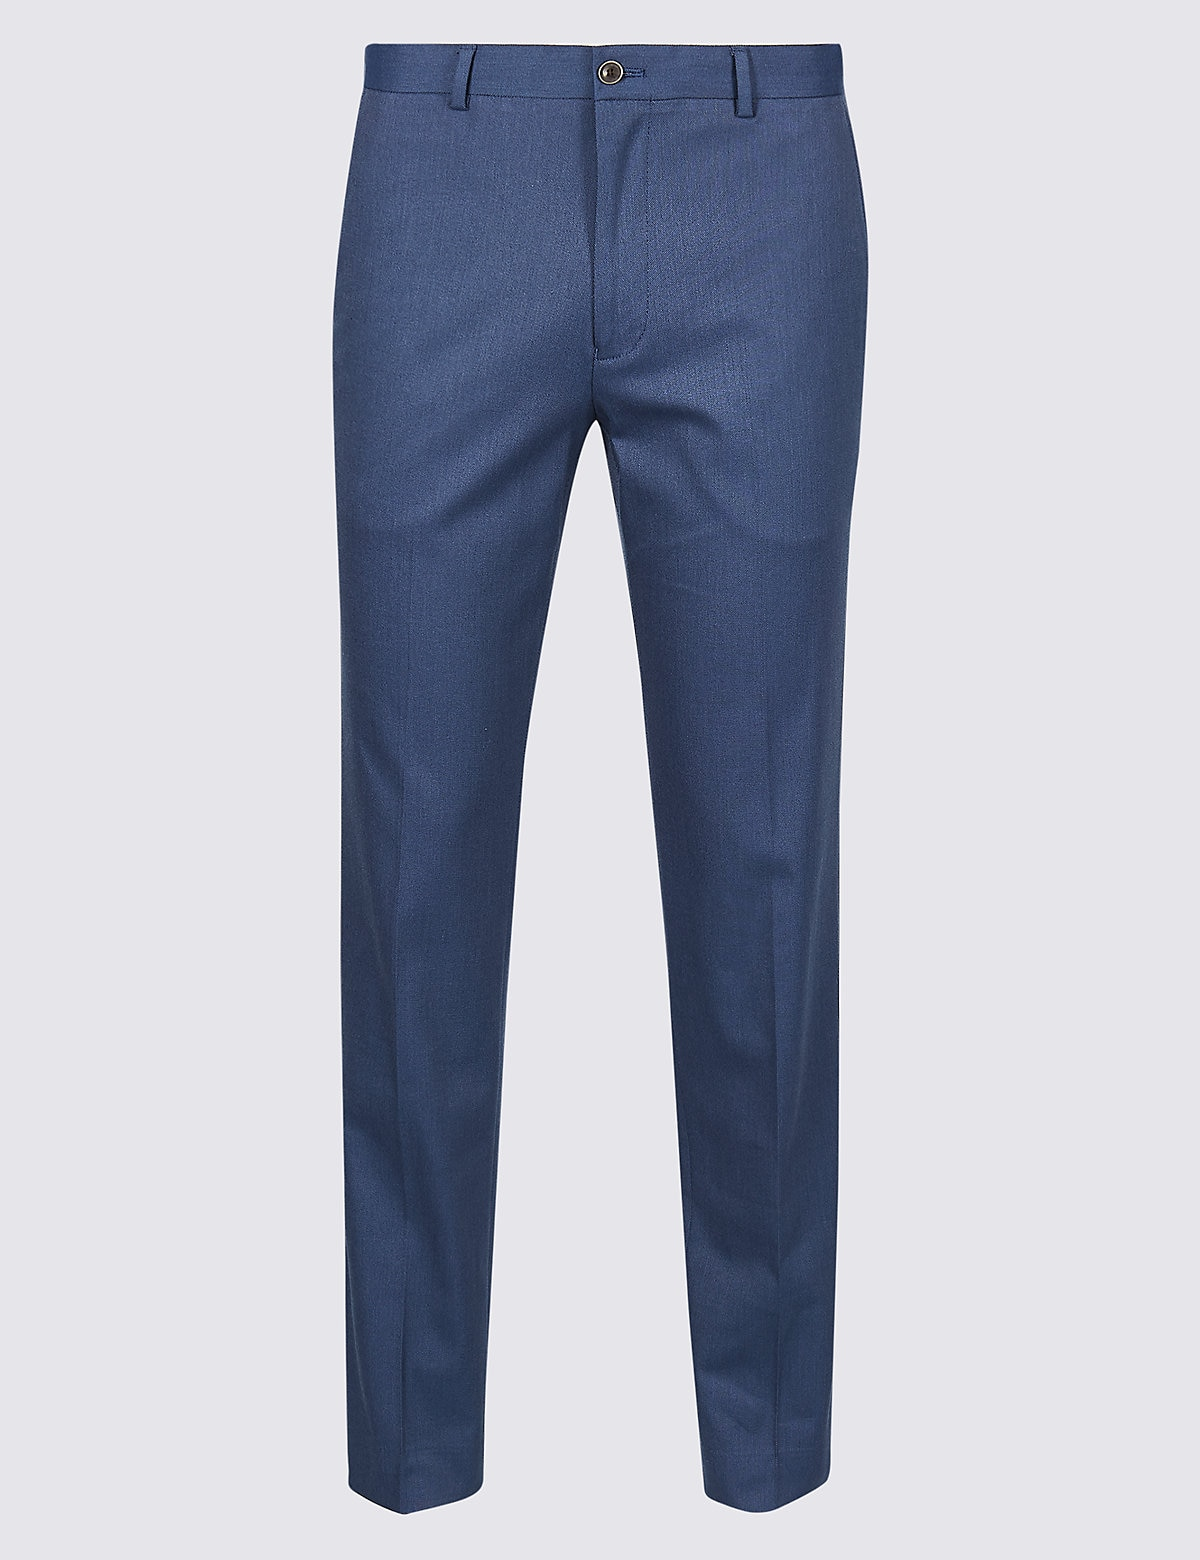 Marks & Spencer Denim Tailored Fit Trousers